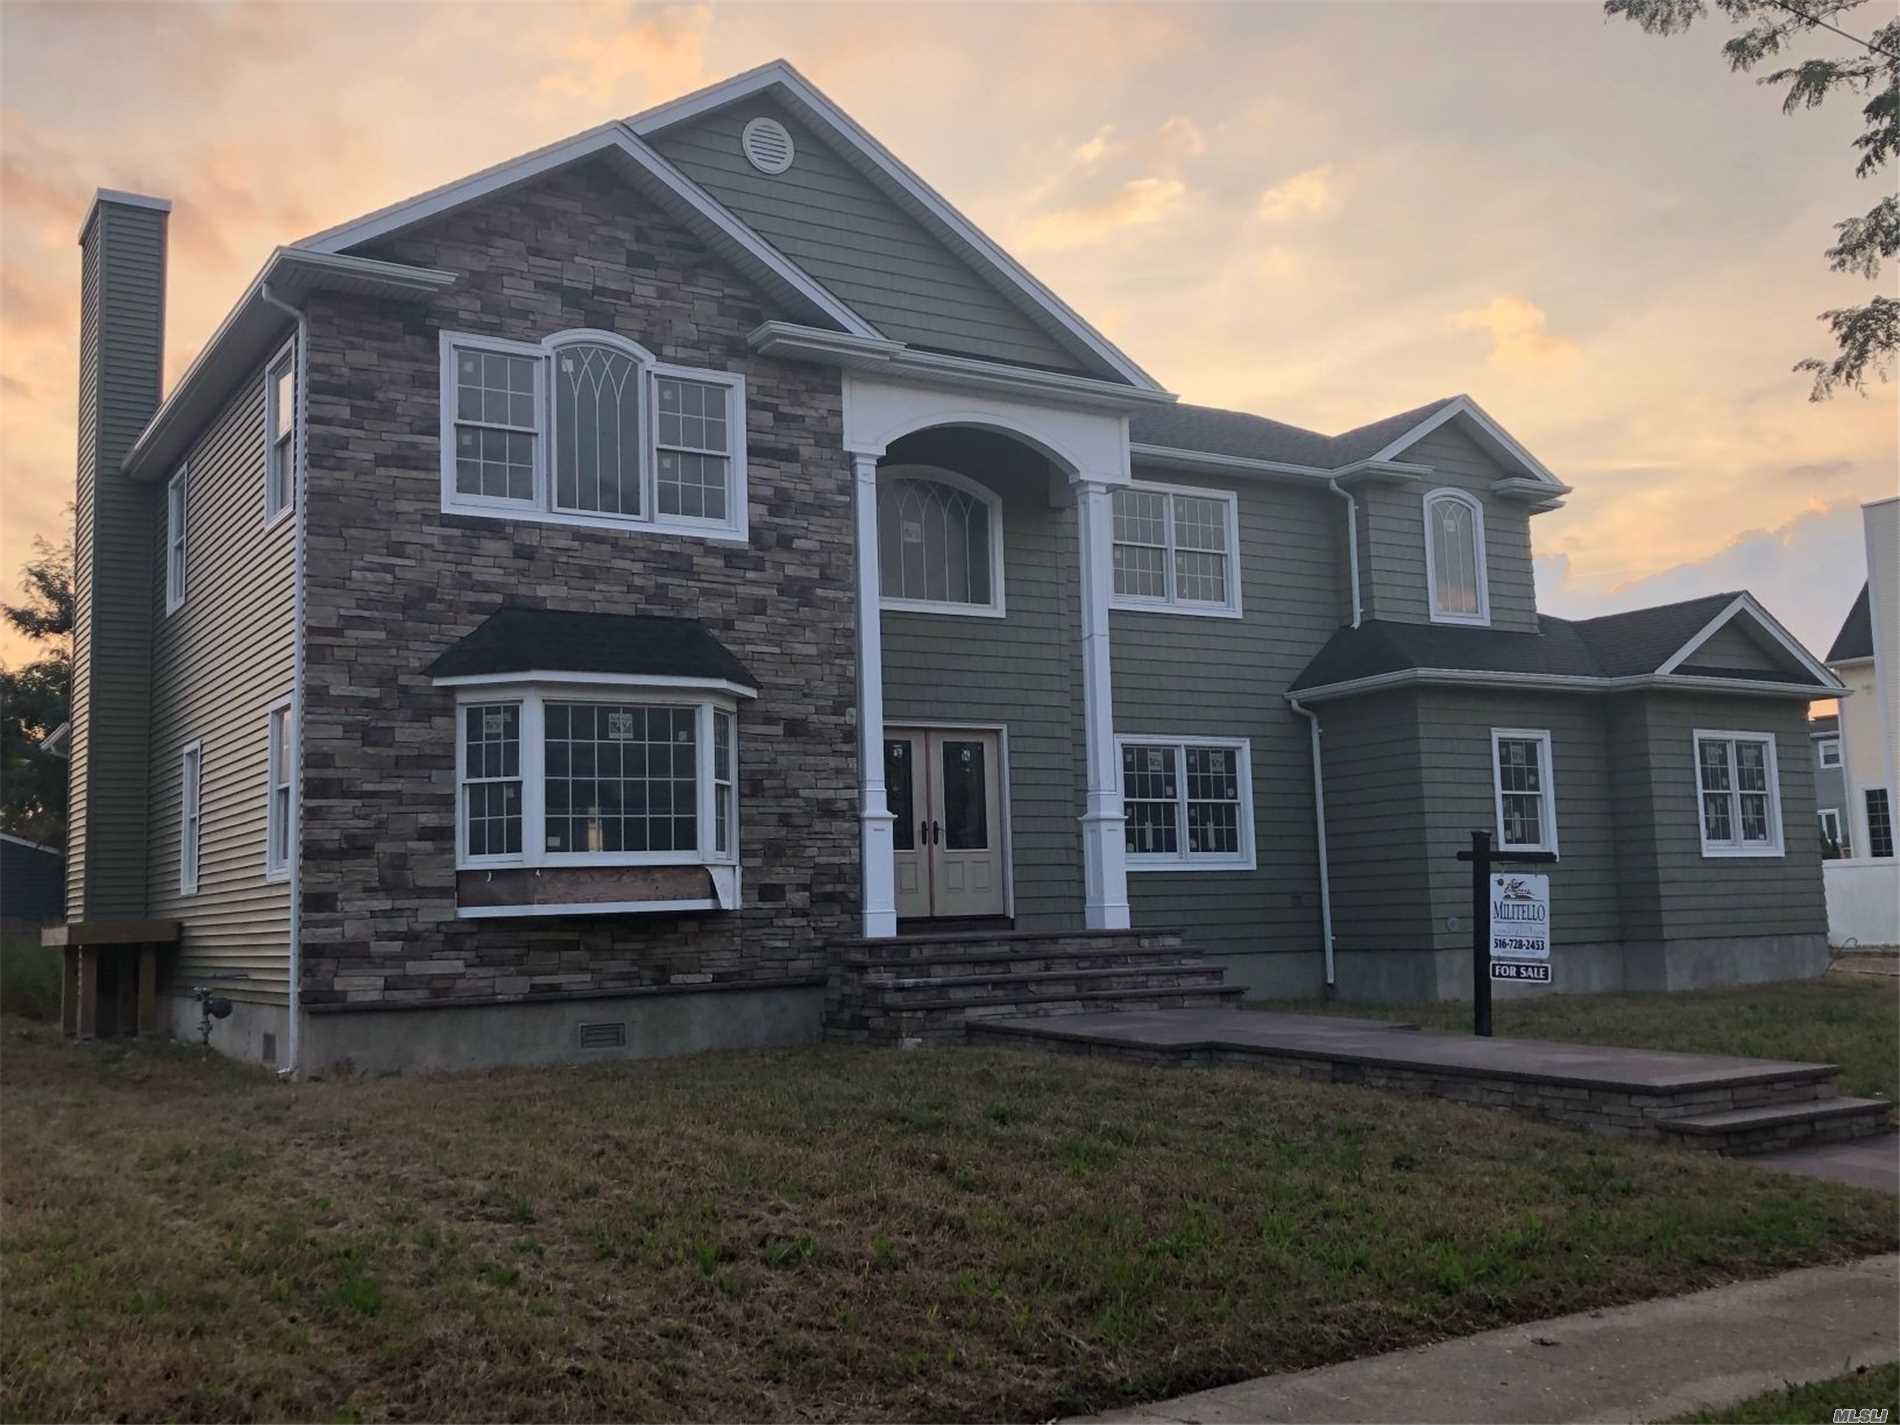 Prestigious Location In Nassau Shores On Large Over Sized Property Across From Bay-Exterior Complete-Interior Framed And Ready For Your Finishing-Fema Compliant-9 Foot Elevation-If You Want Owner/Builder To Complete See Ml#3069874